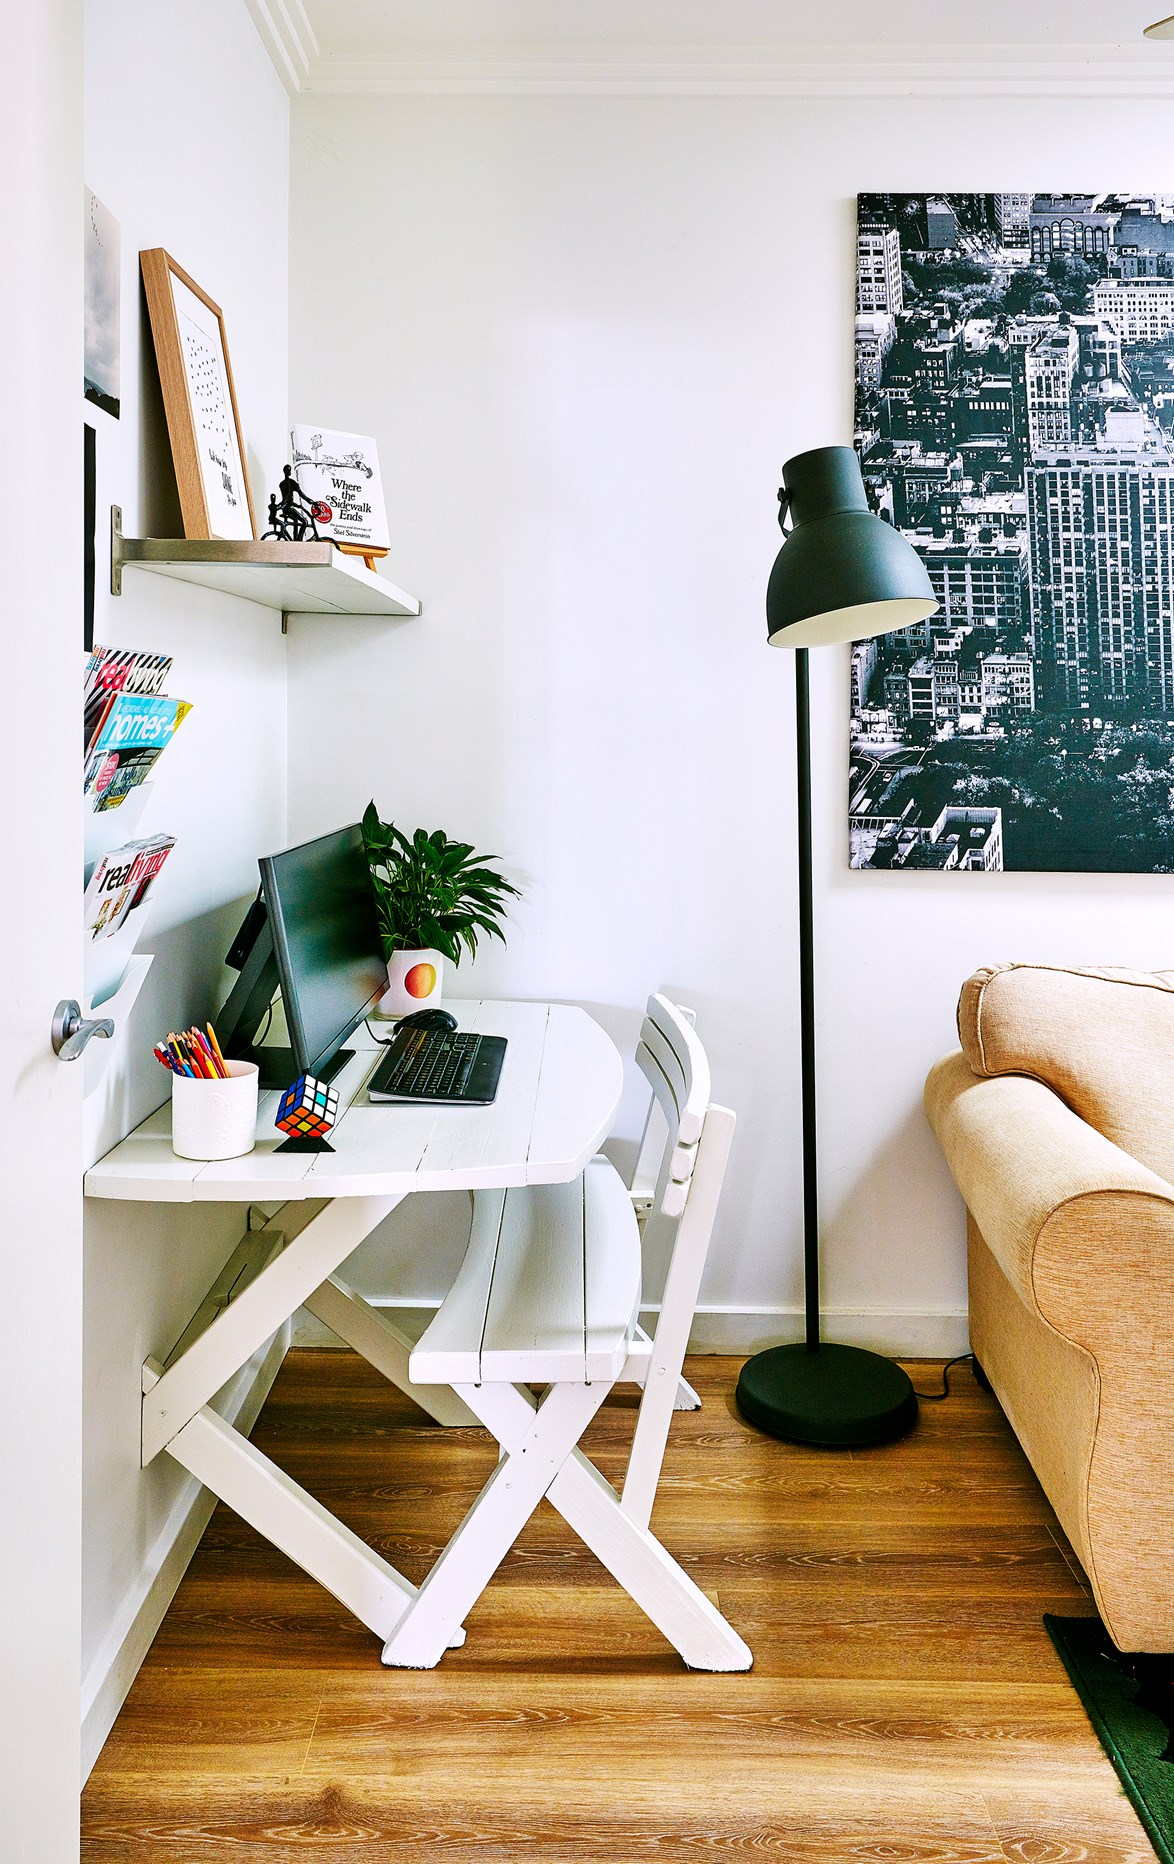 """A quaint and practical work space has been set up in this [eclectic family home](https://www.homestolove.com.au/this-eclectic-country-home-has-family-at-its-heart-4003 target=""""_blank"""") by sawing a picnic bench in half and mounting it to the wall. *Photo:* Scott Hawkins"""